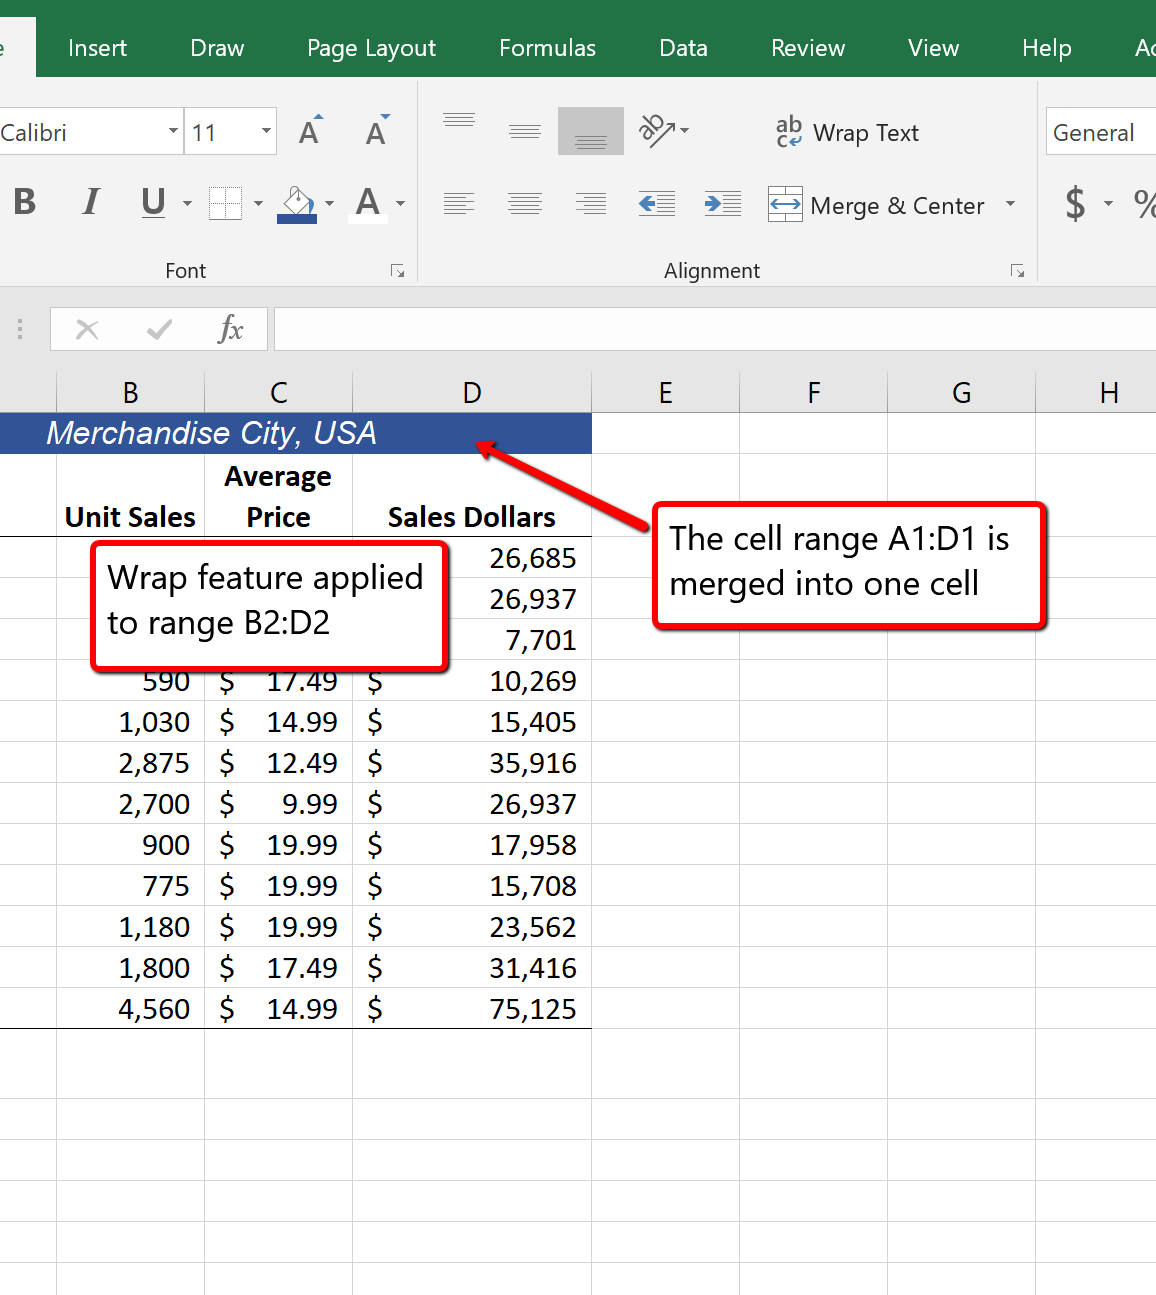 """Cell range A1:D1 merged into one cell for title """"Merchandise City,USA"""". A:2 has """"Month"""" as title, then Wrap Text feature applied to show full titles in range B2:D2 as """"Unit Sales"""", """"Average Price"""", and """"Sales Dollars""""."""